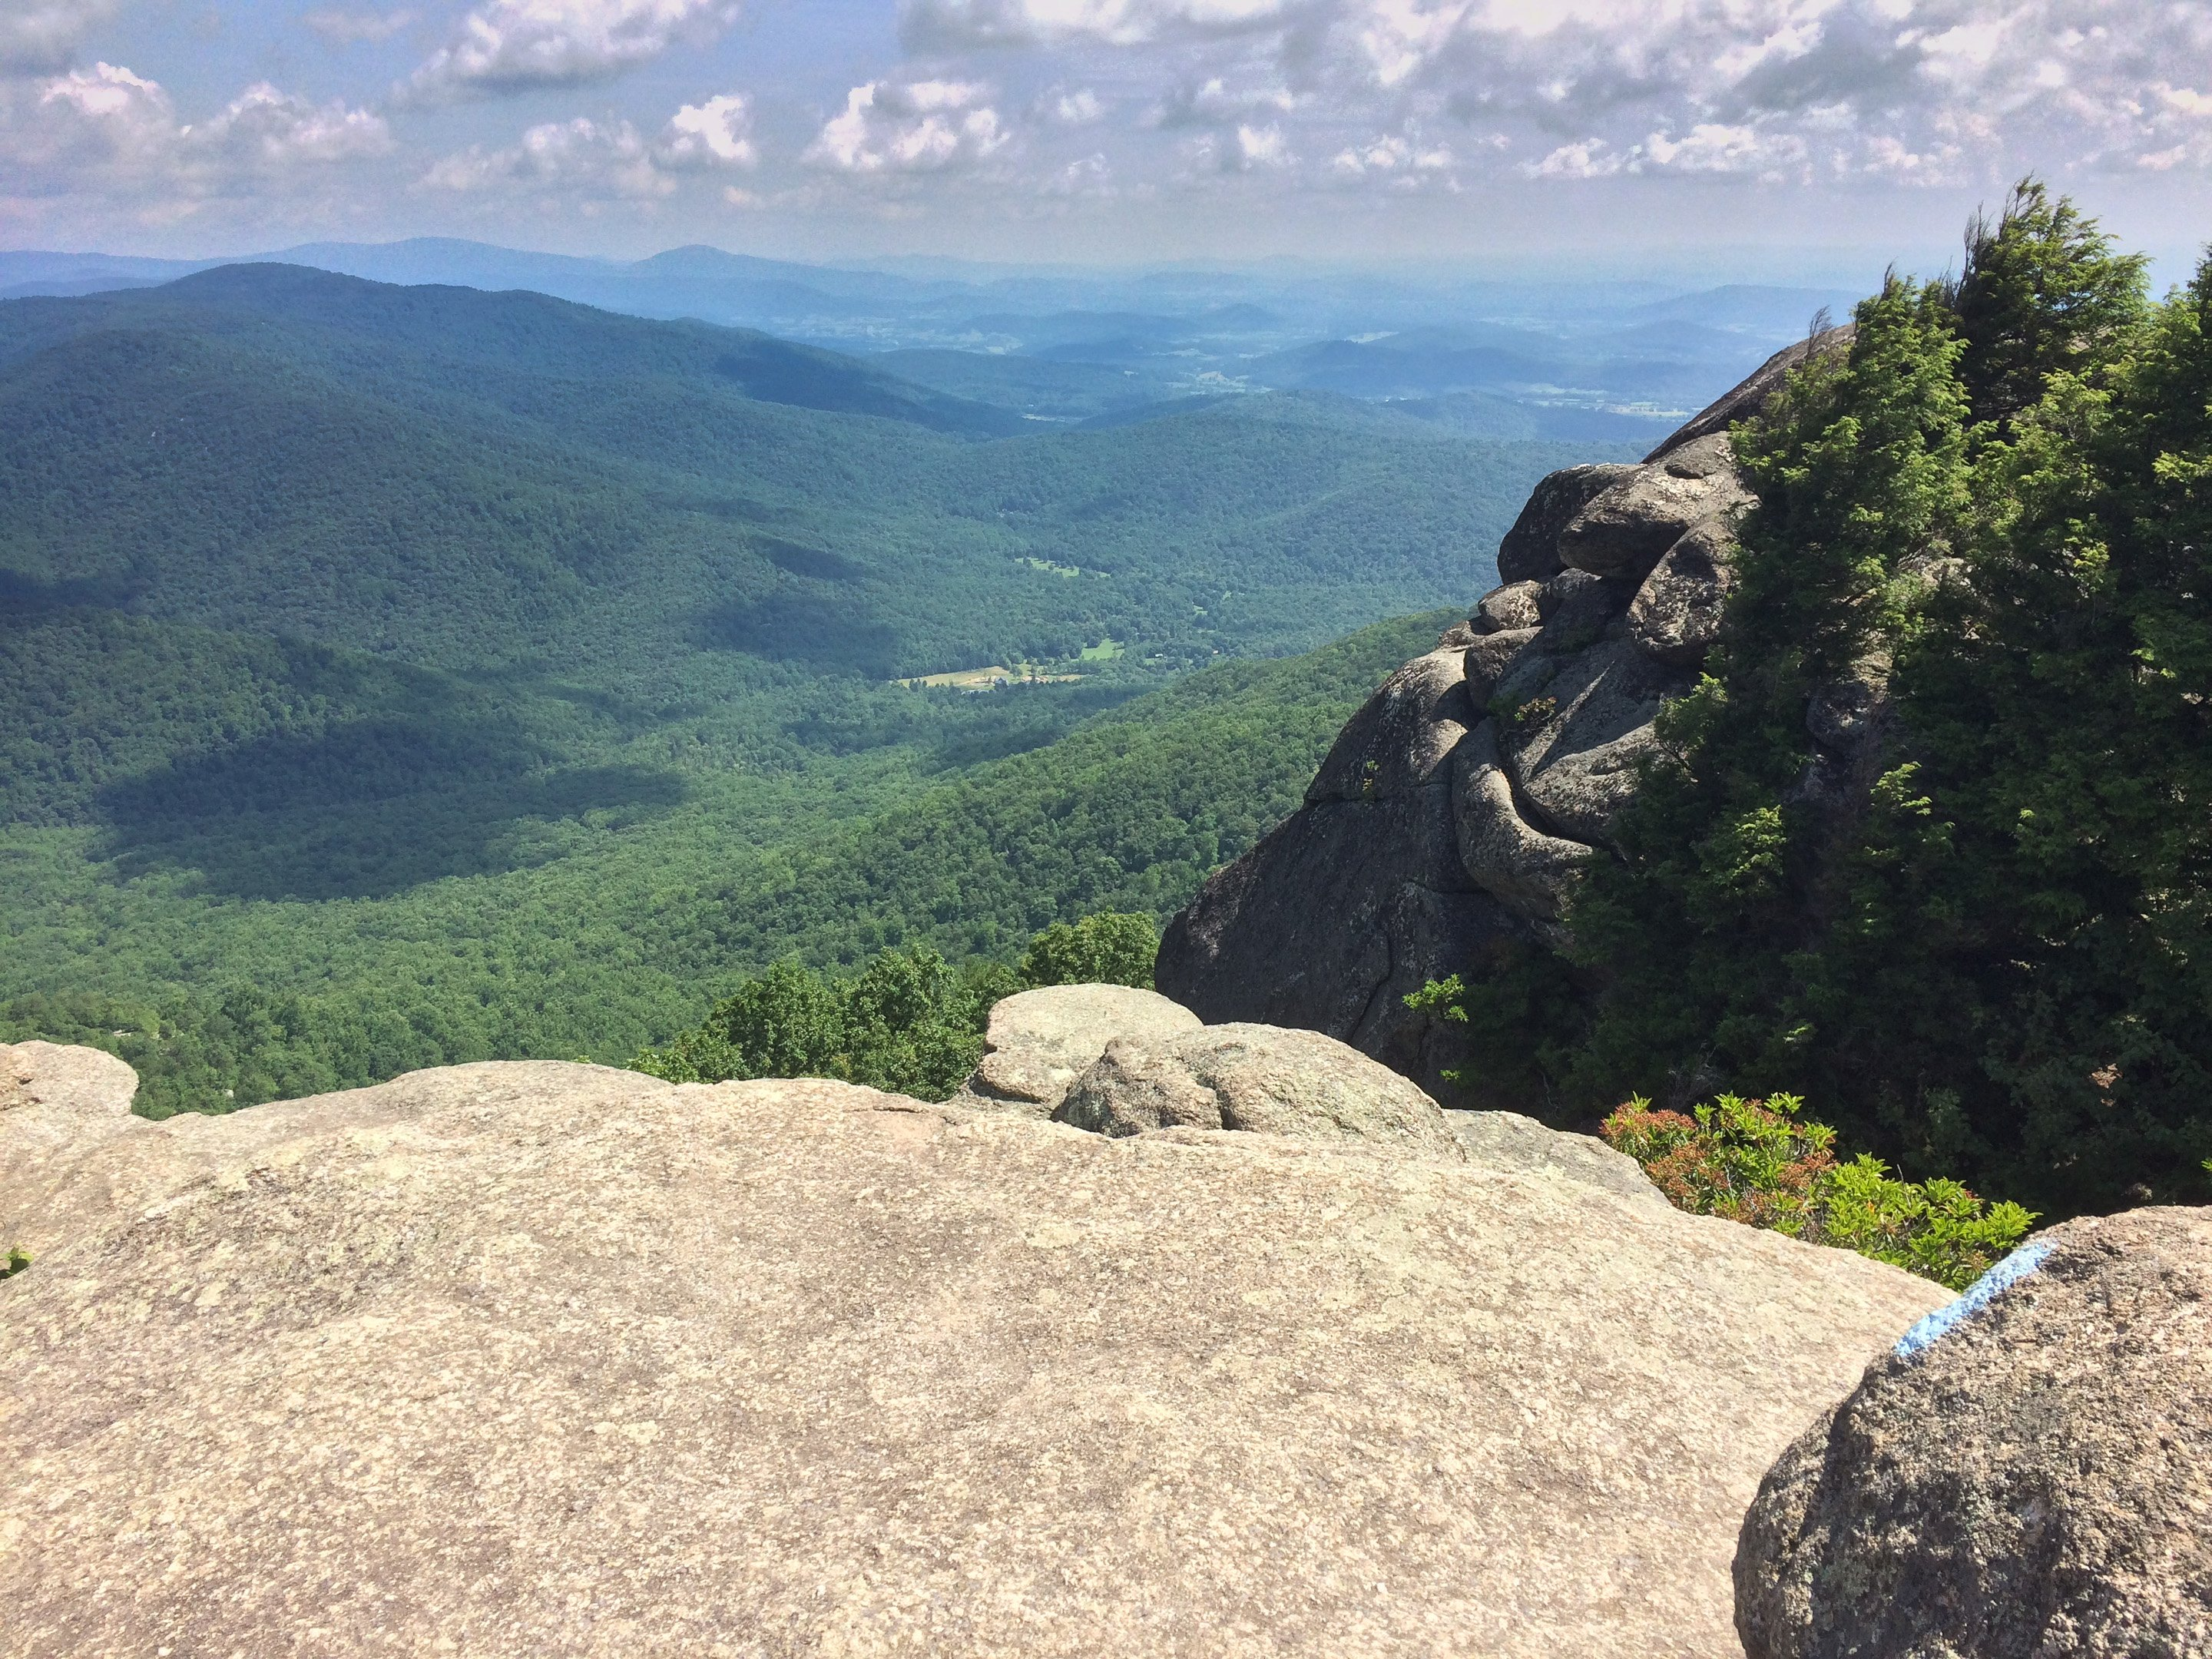 The view from Old Rag Mountain. Photo by Flickr user Larry Borreson.